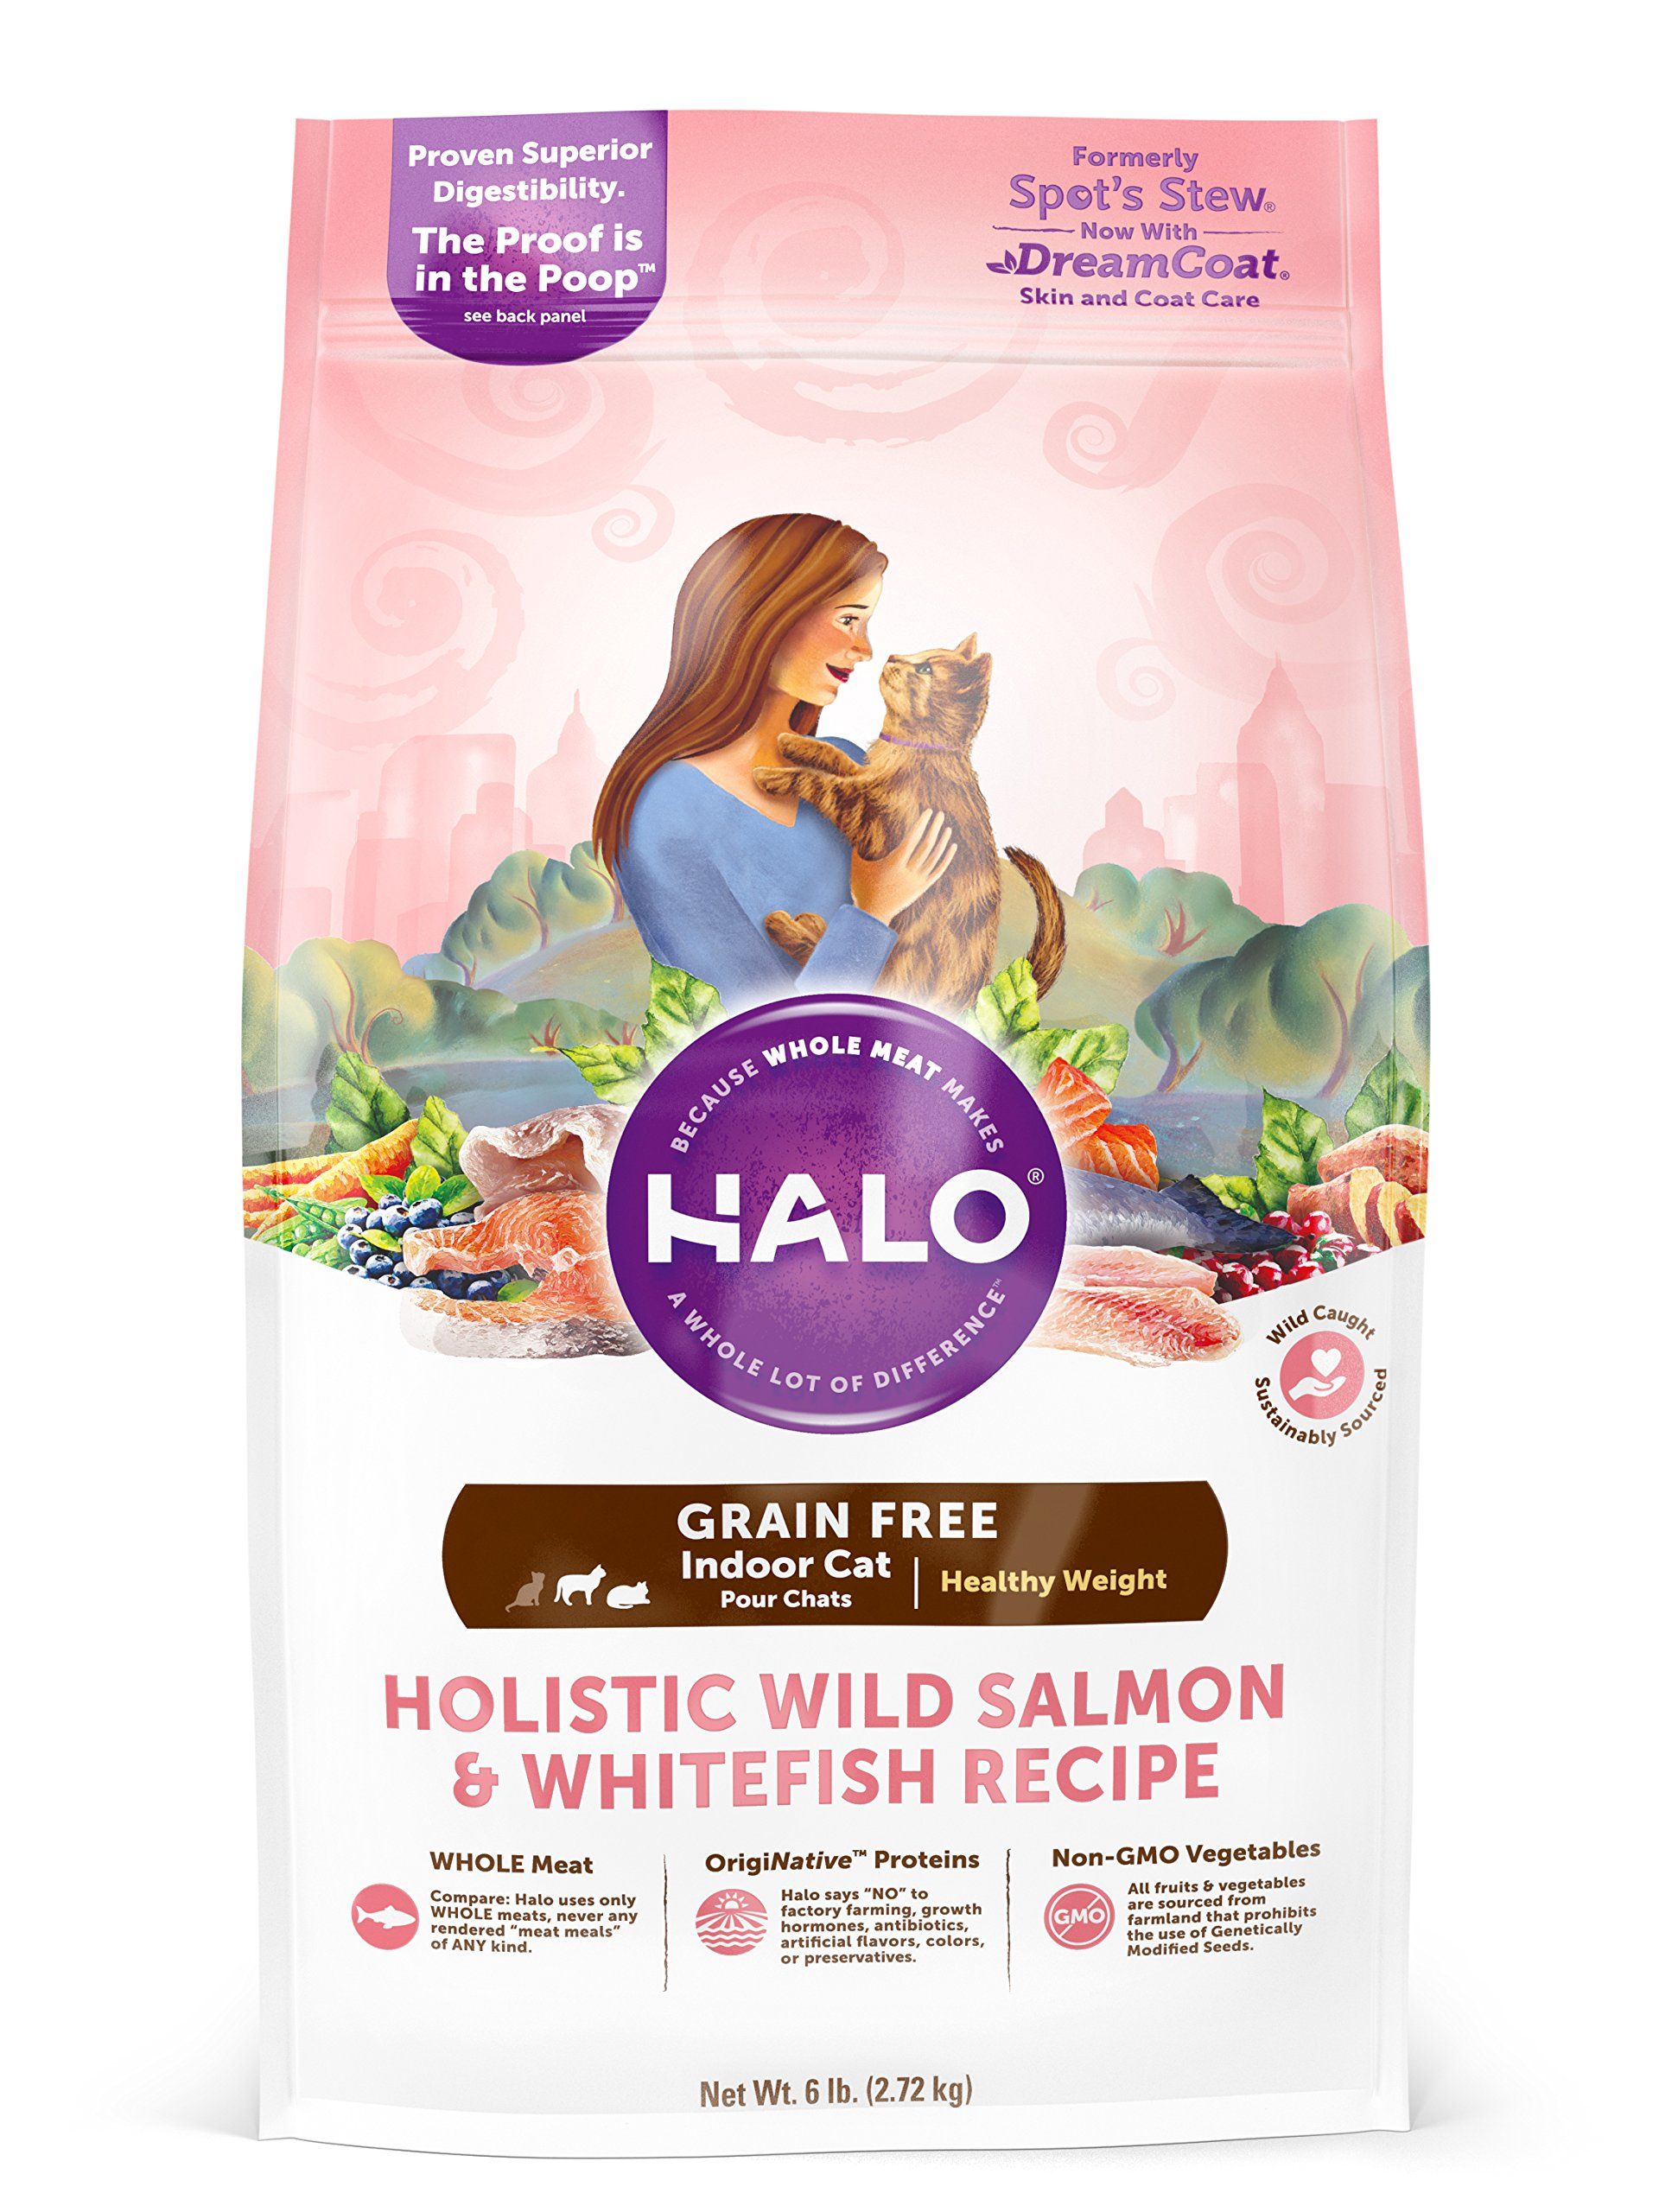 Halo Grain Free Natural Dry Cat Food, Indoor Healthy Weight Wild Salmon & Whitefish Recipe, 6-Pound Bag by HALO